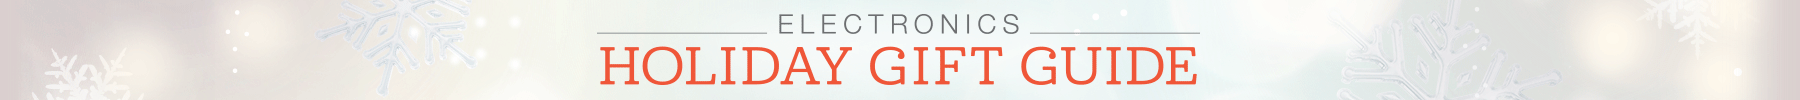 2014 Electronics Holiday Gift Guide